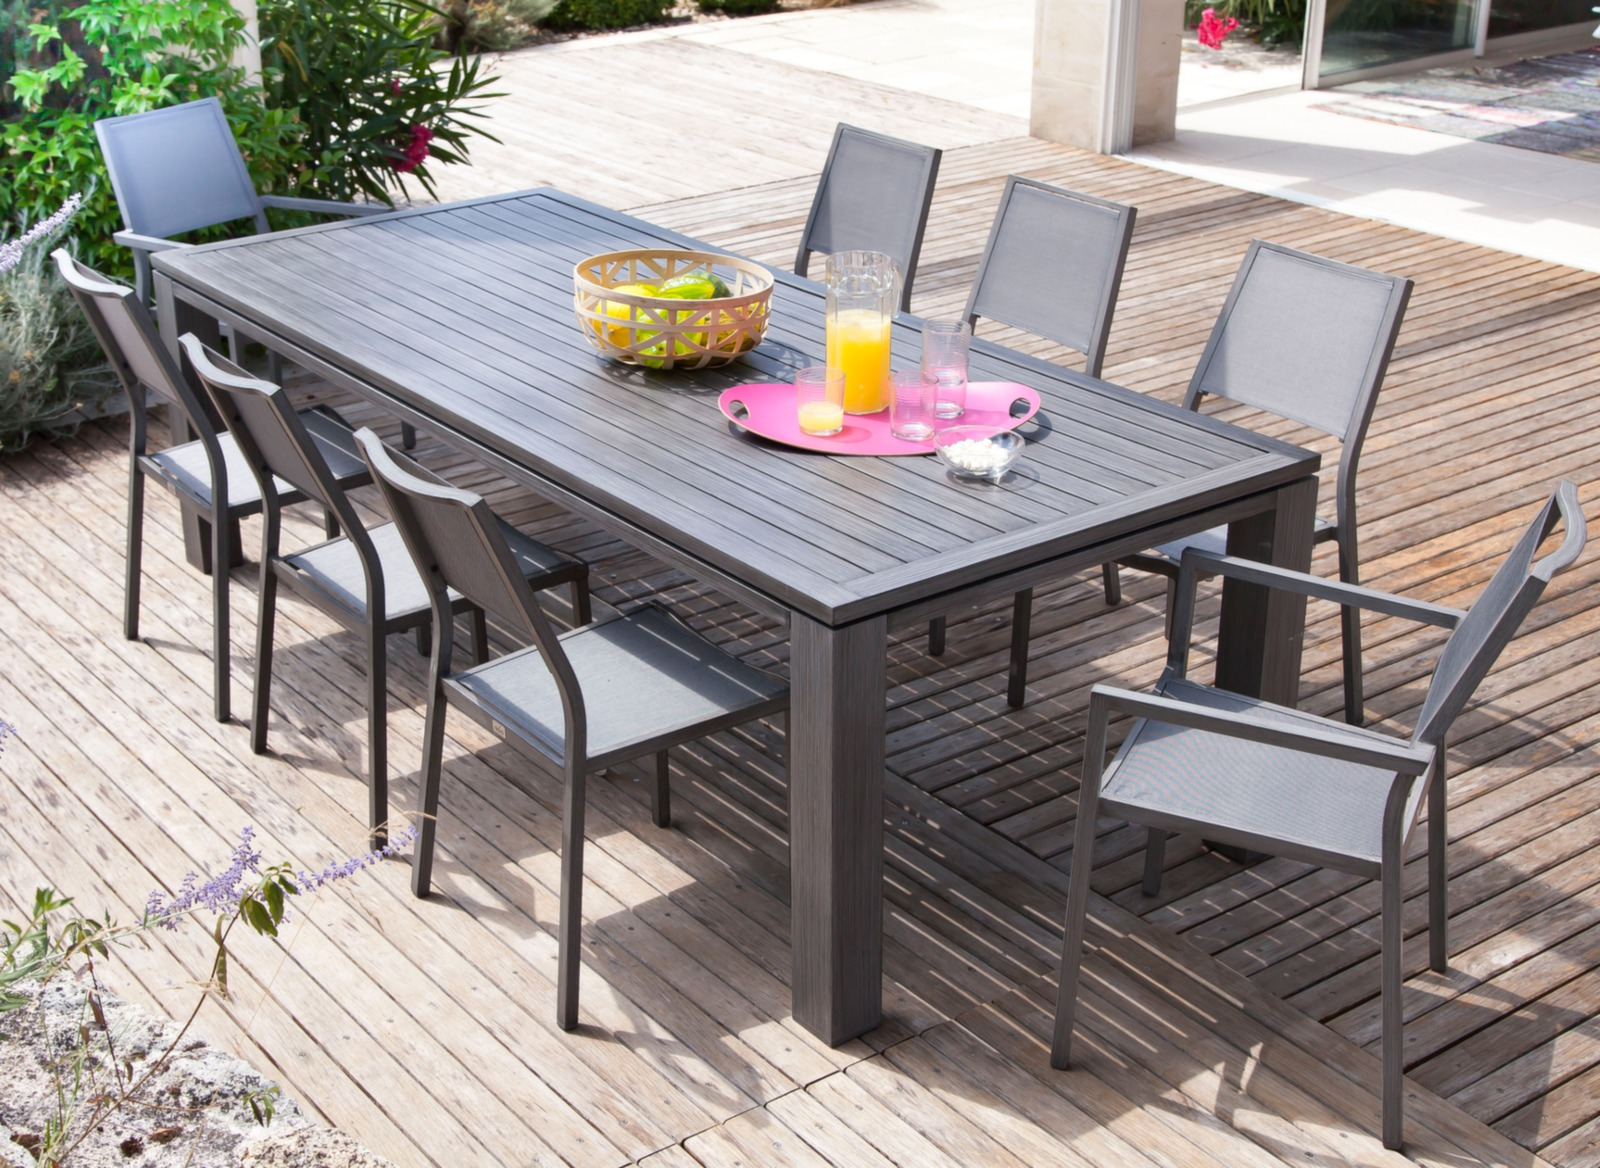 Ensemble Table Et Chaise De Jardin Aluminium Table Fiero 240x100cm Meuble De Jardin Design Proloisirs